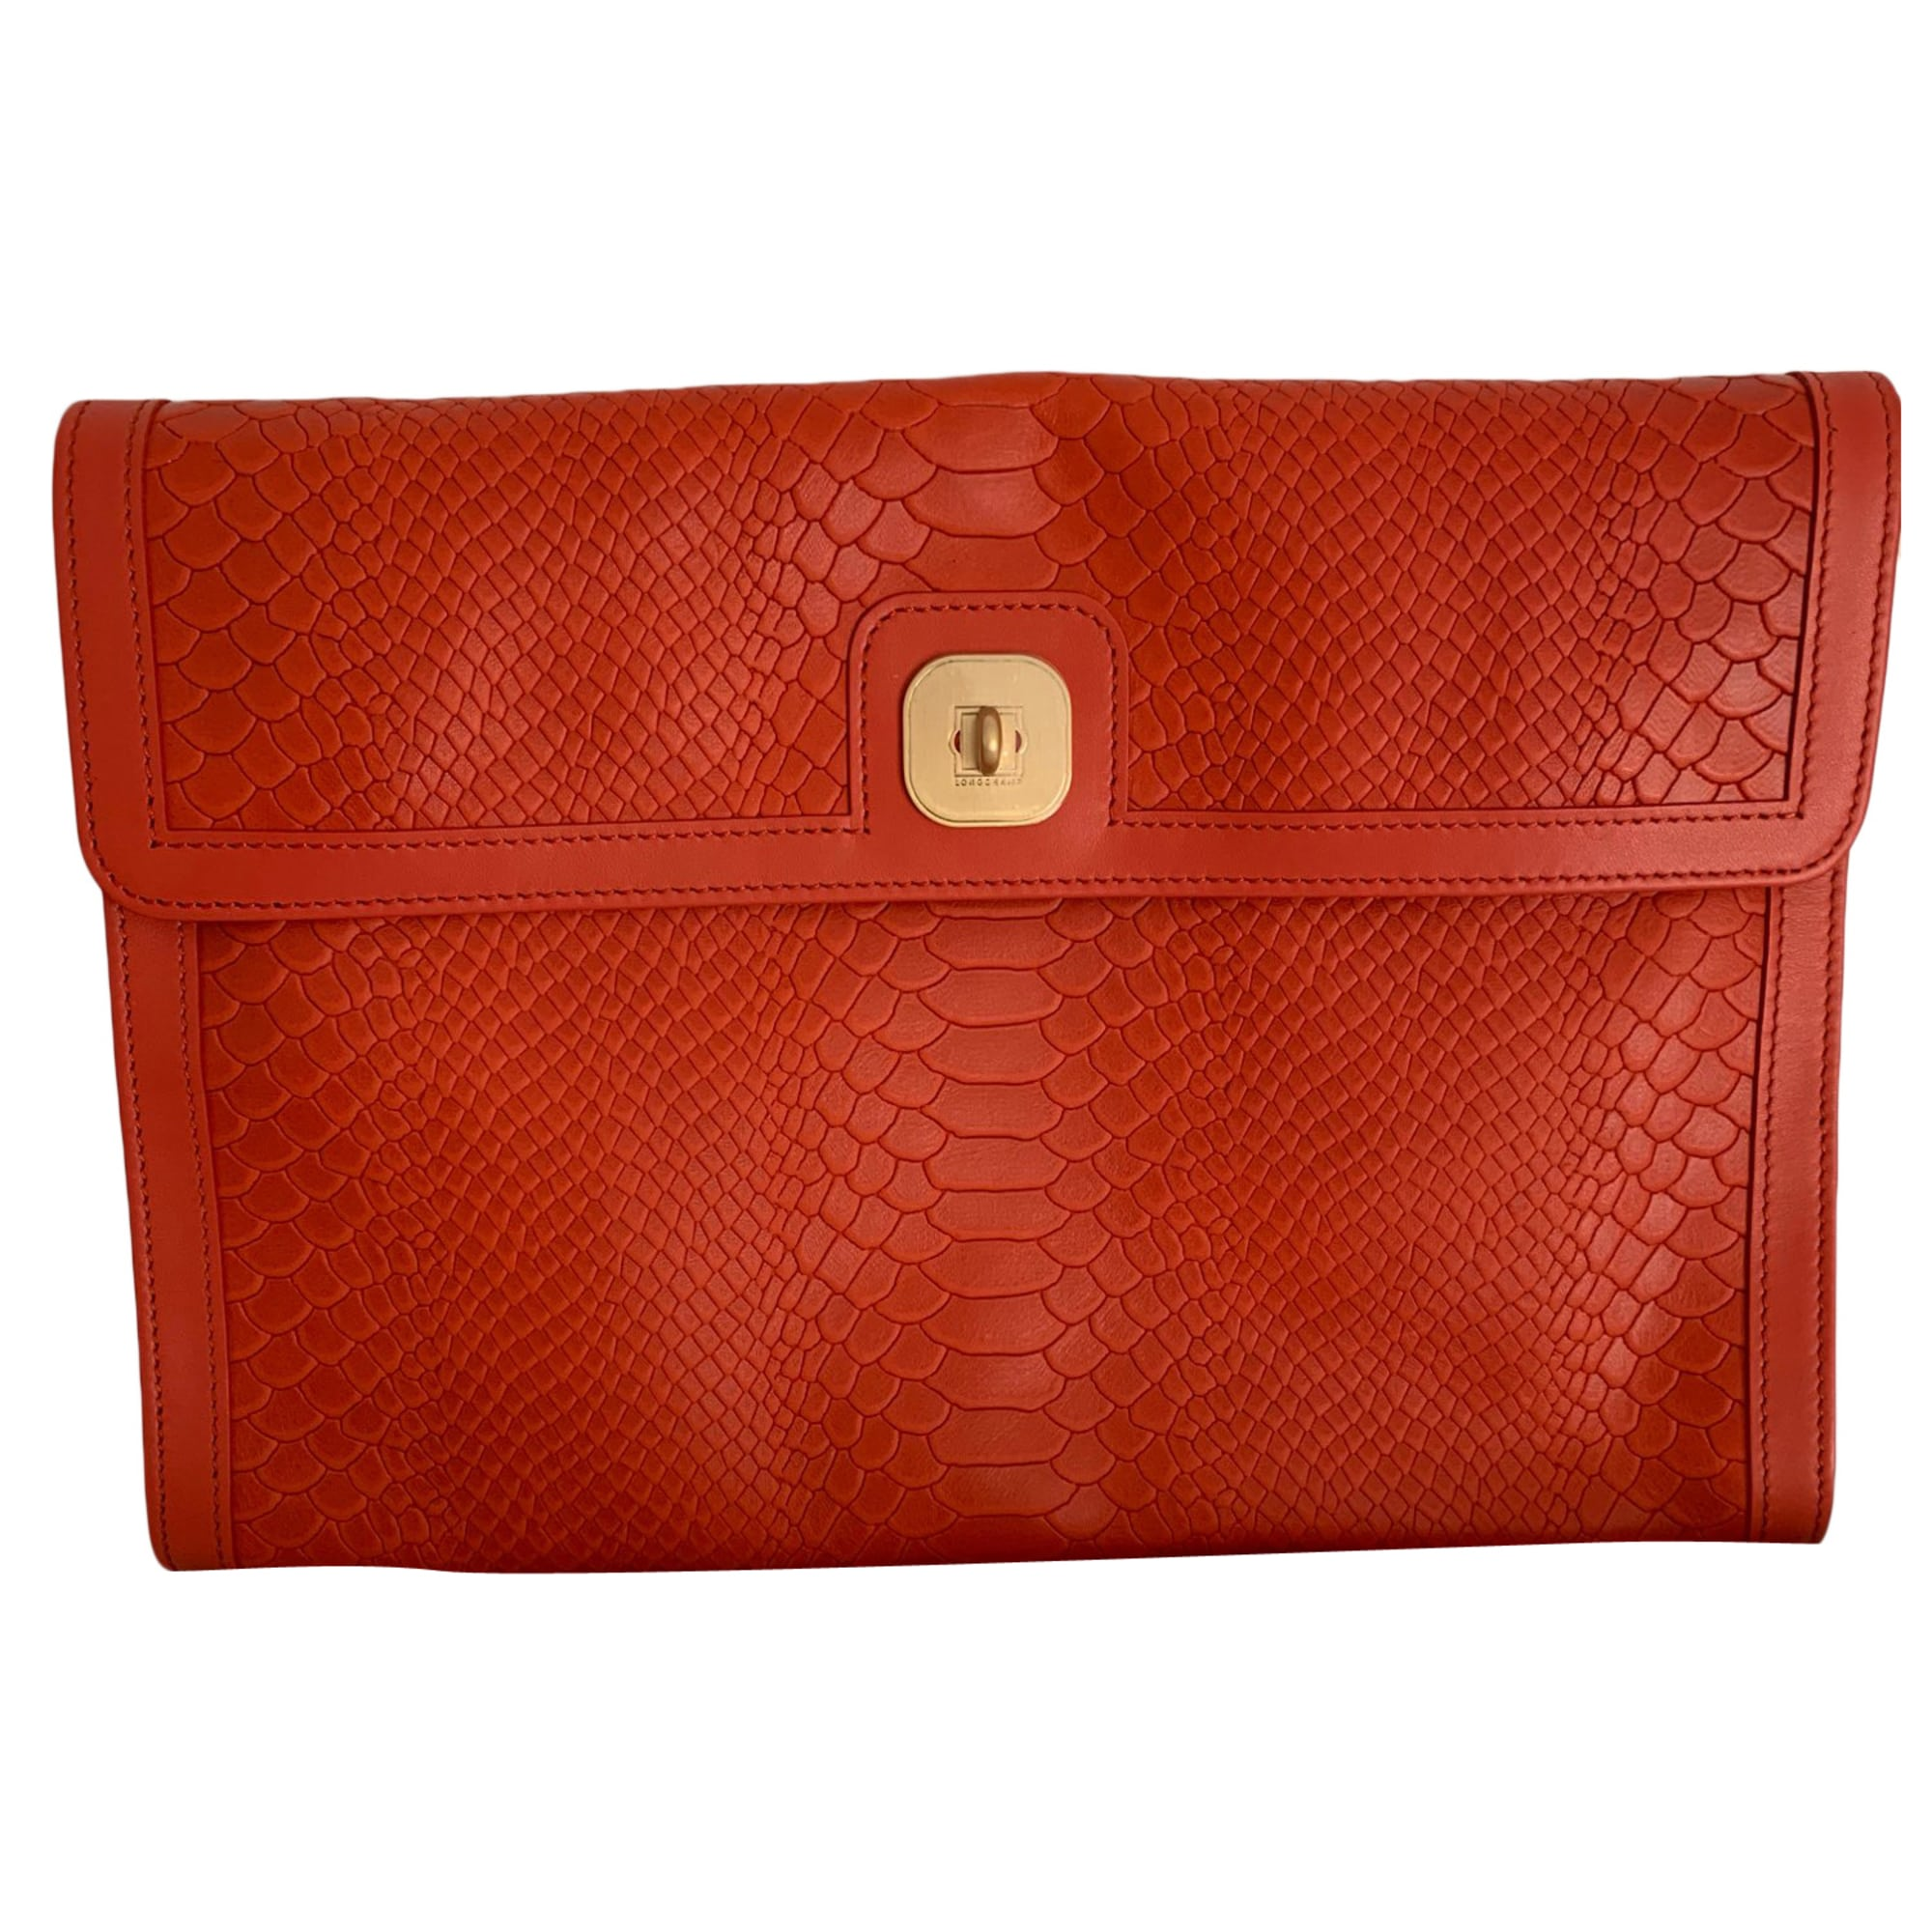 Leather Clutch LONGCHAMP Orange